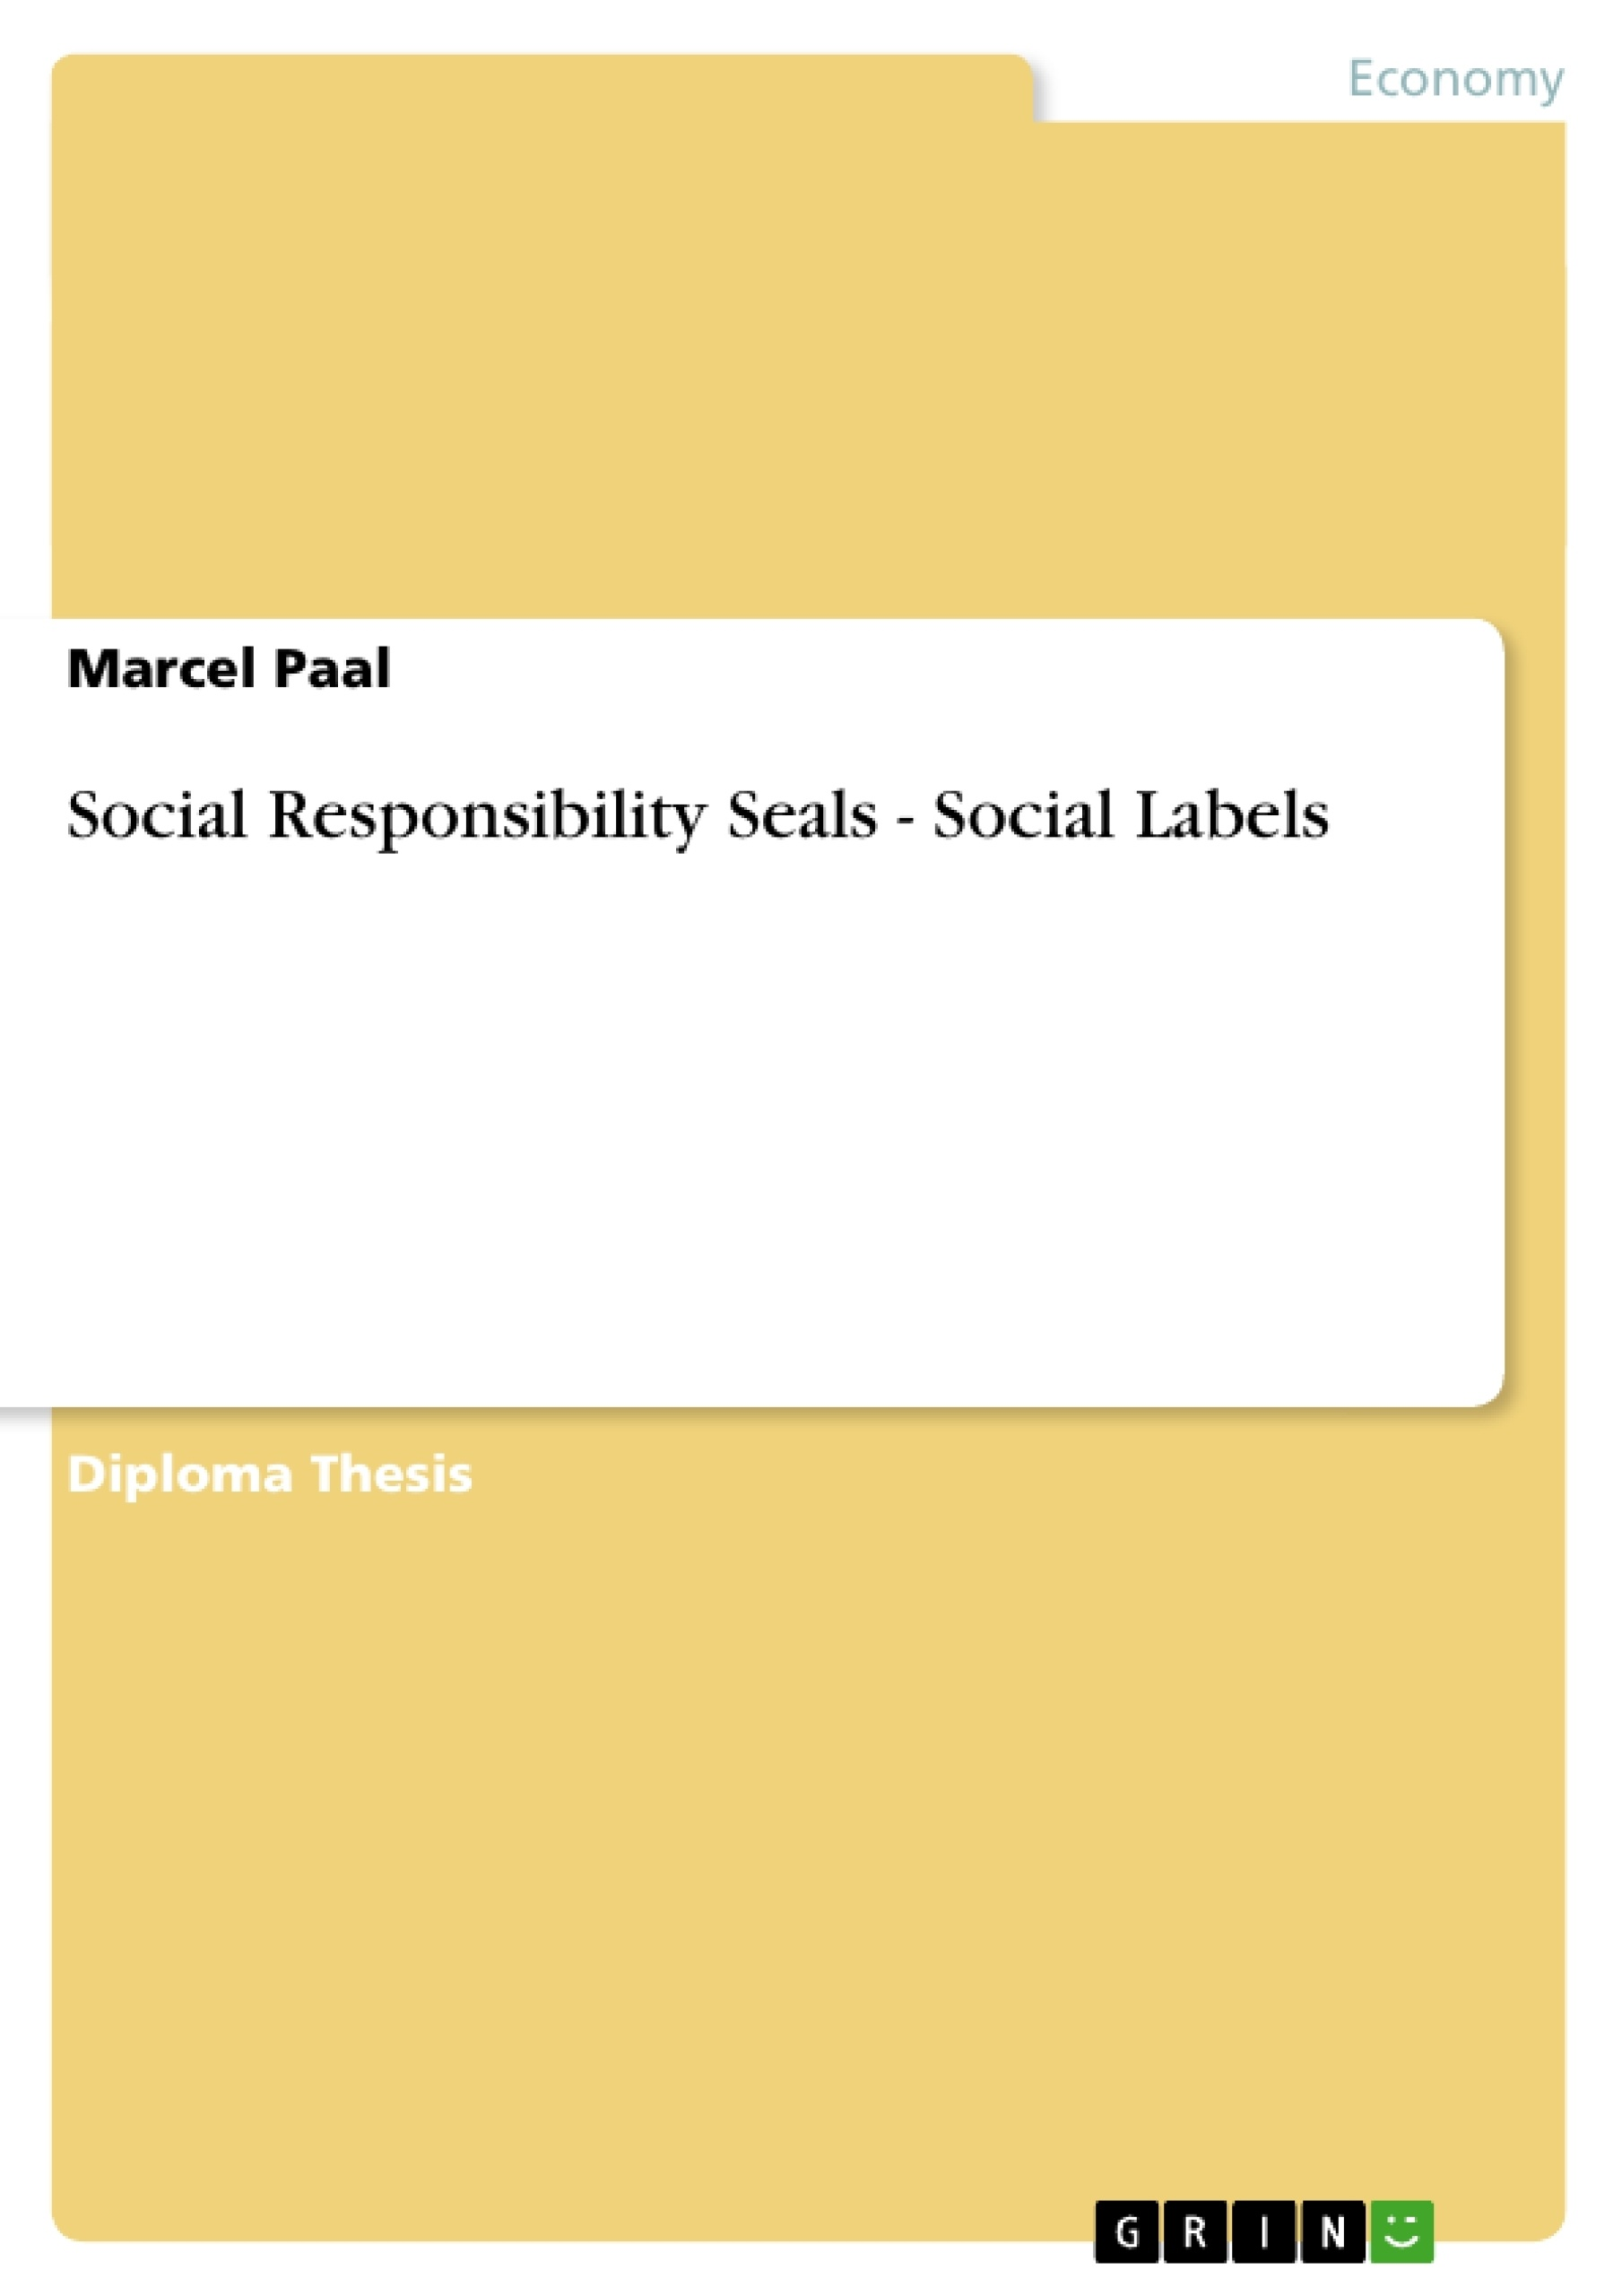 evaluation ethical perspectives on social responsibility essay